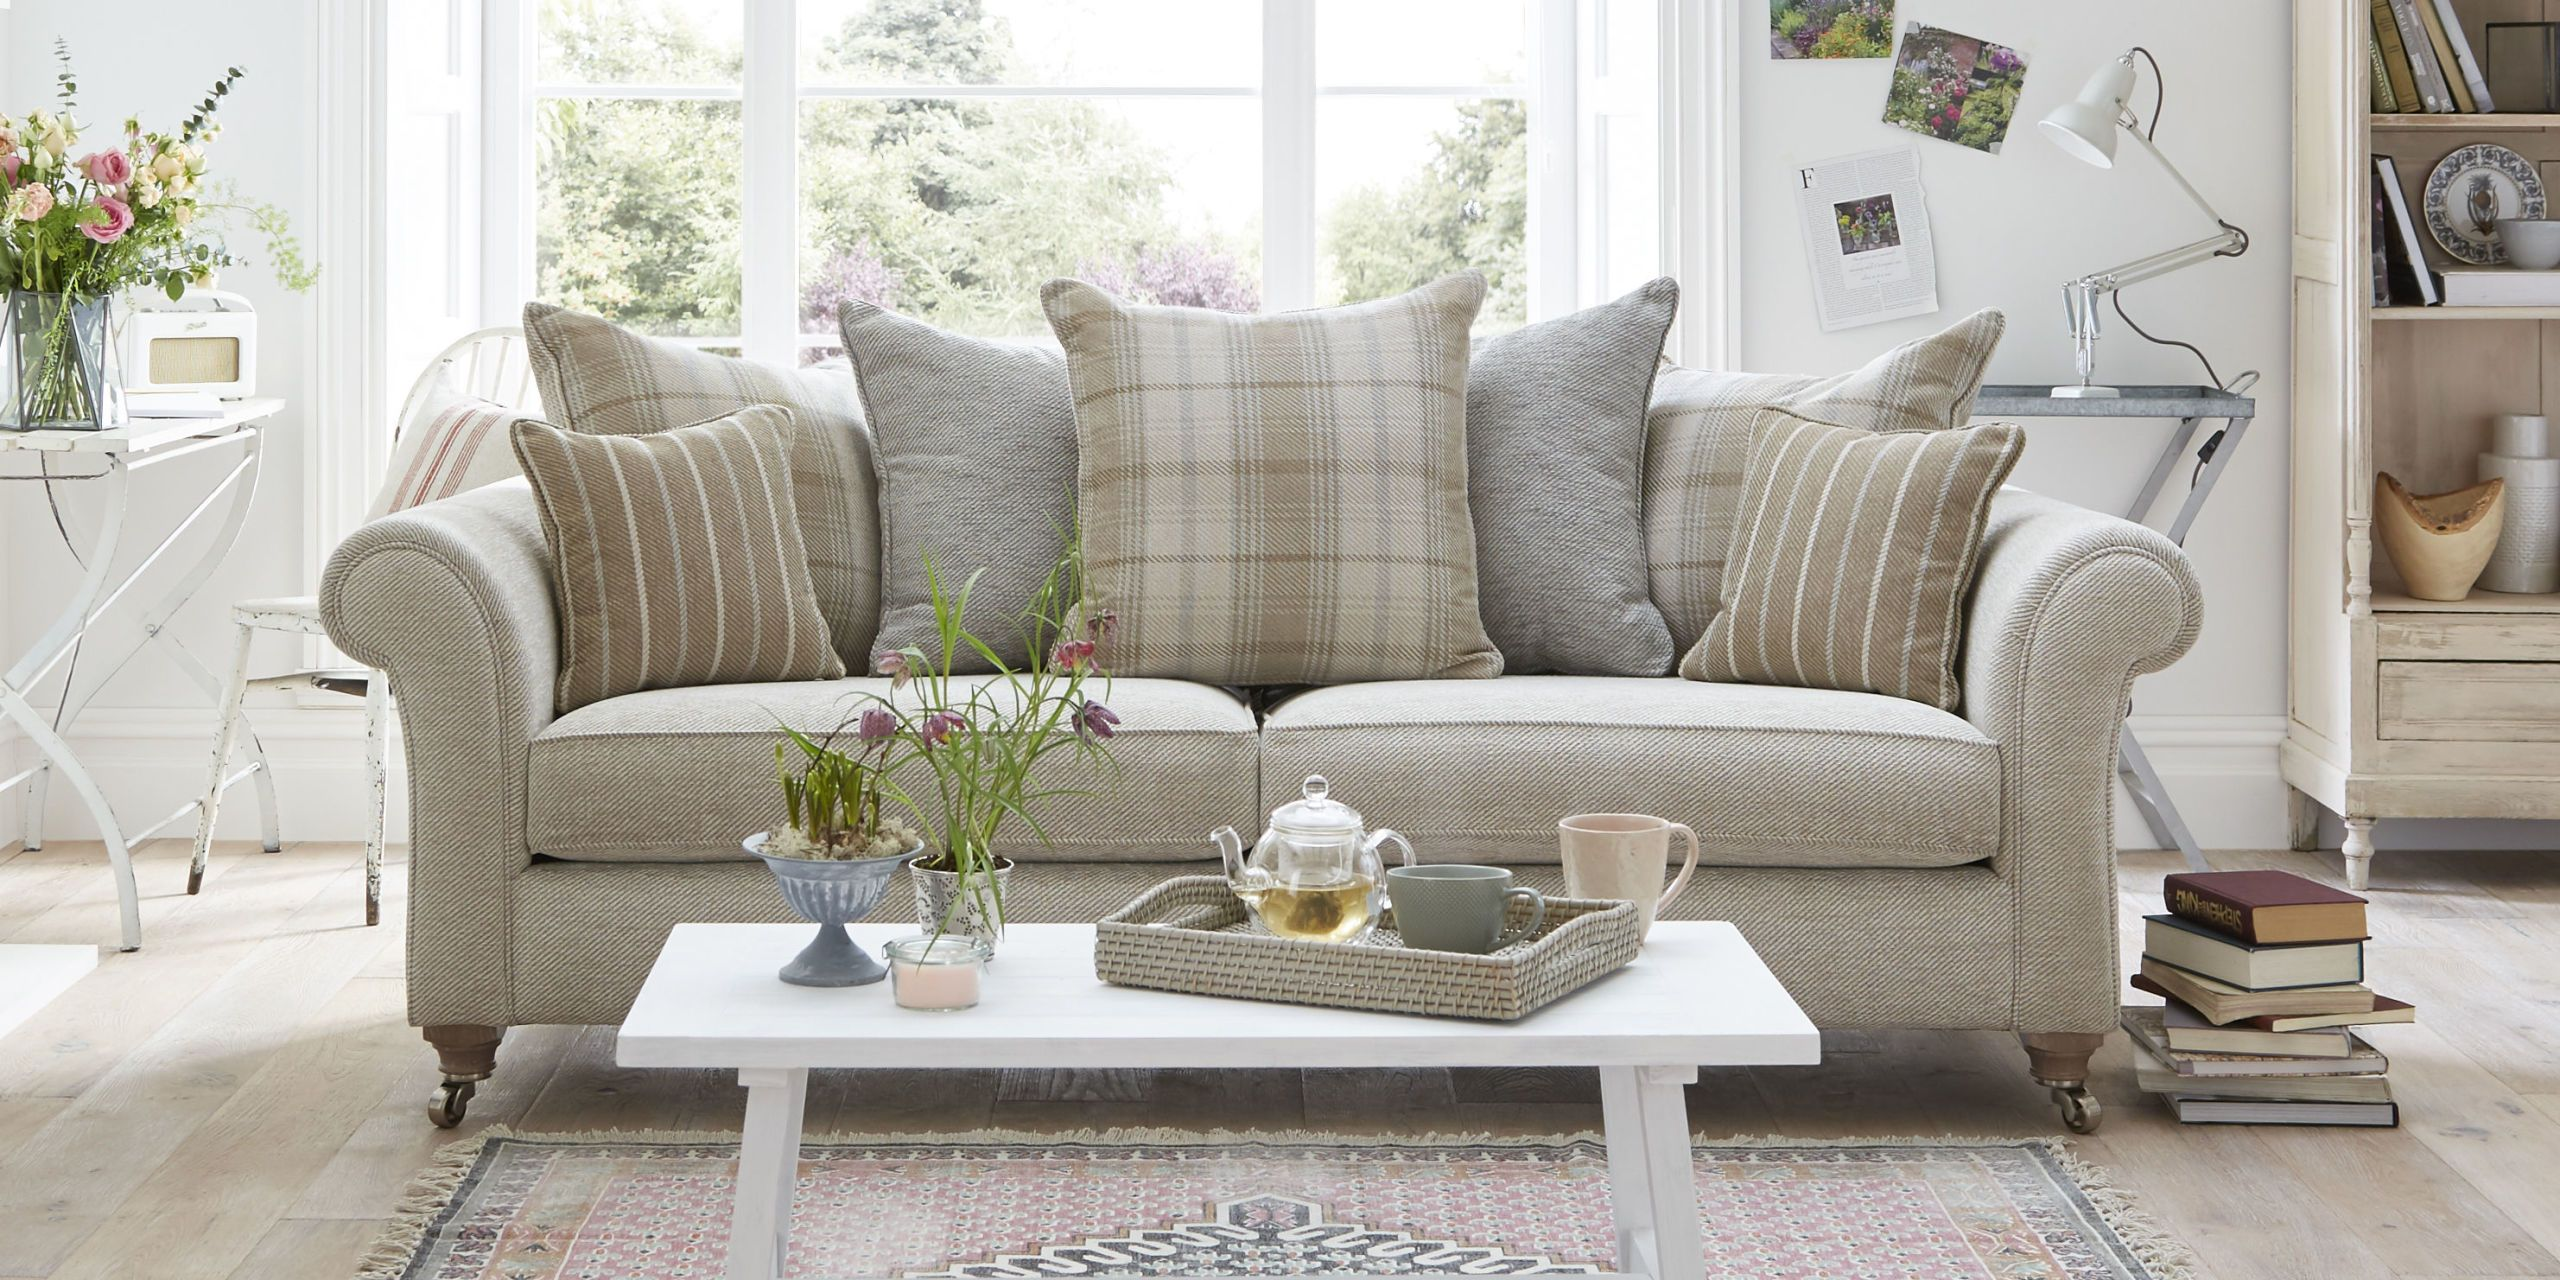 Searching for the perfect sofa is no walk in the park - you want something classic yet comfortable timeless yet on trend. You need a sofa you can snuggle ... & The Country Living Morland sofa is now at DFS